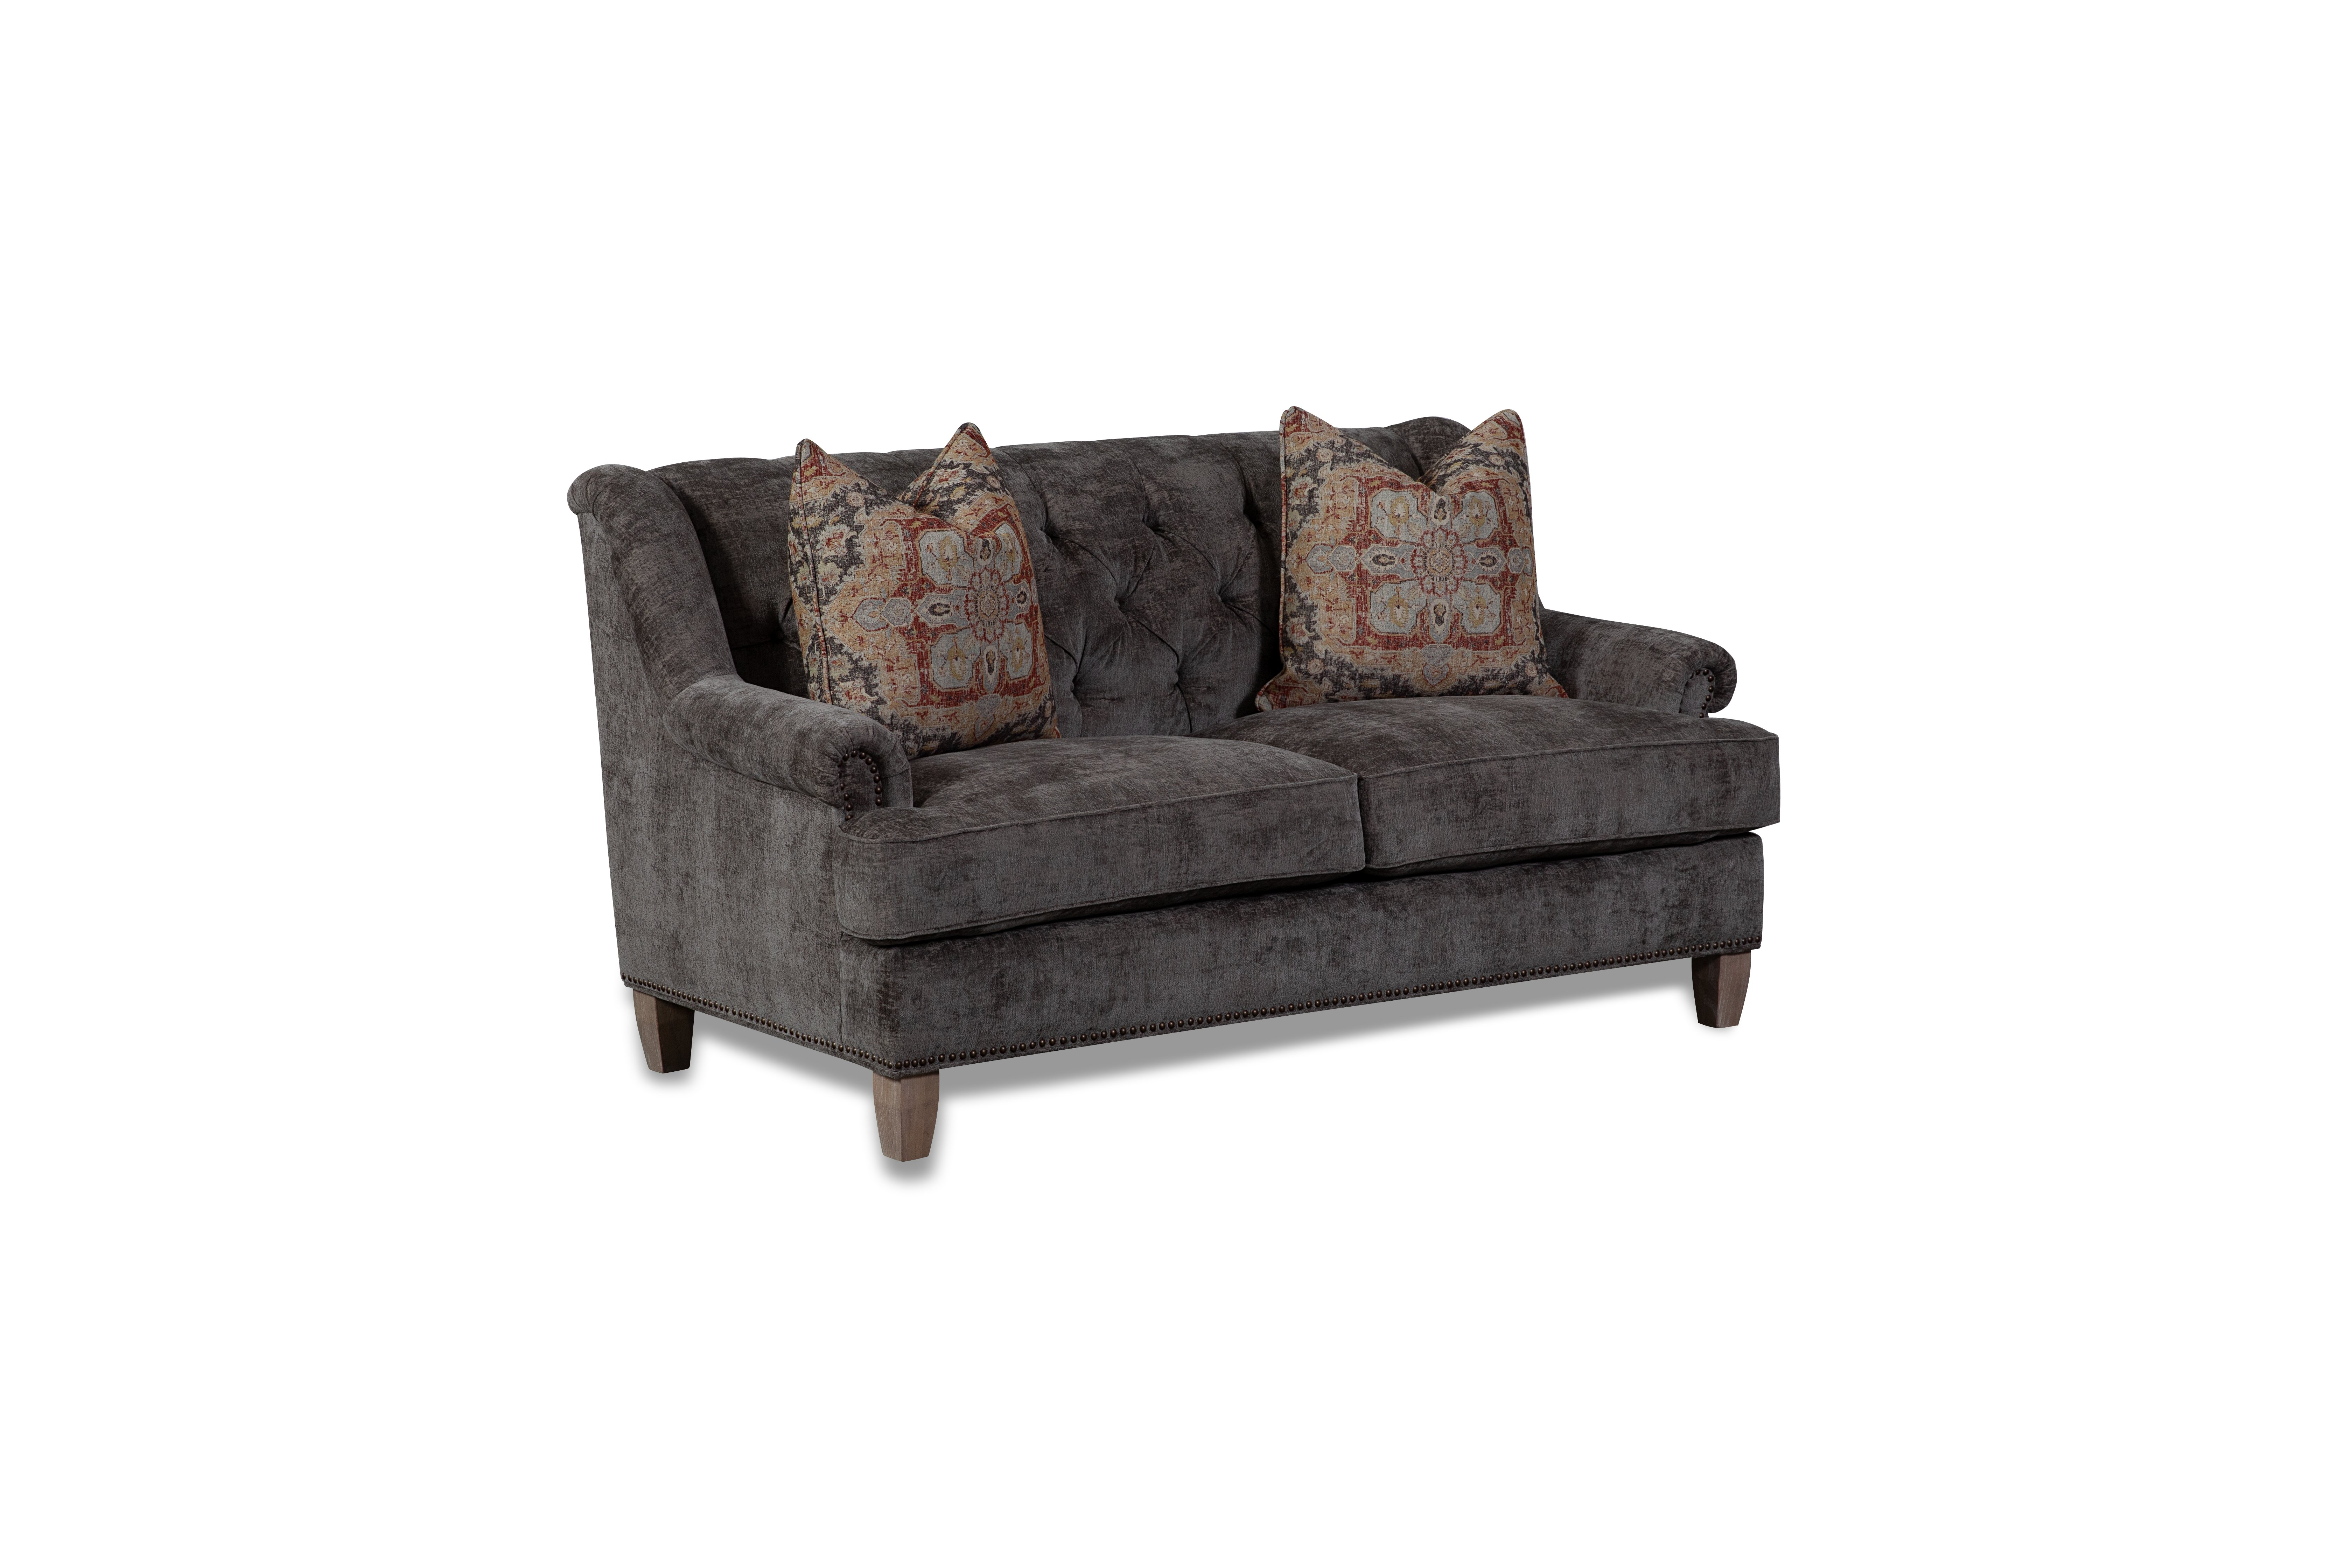 GetPhotoSigned?name=45-RR355L-0%20LOVESEAT%206374B%20%2340%207500%20%20FOR%20ANGLE%20JPG.jpg&nameSignature=8ba0d887d12139e3ba2c89d5bb5b7fba6d7c85b998bf&versionId=13620&force_allow_caching=1&cache_bust